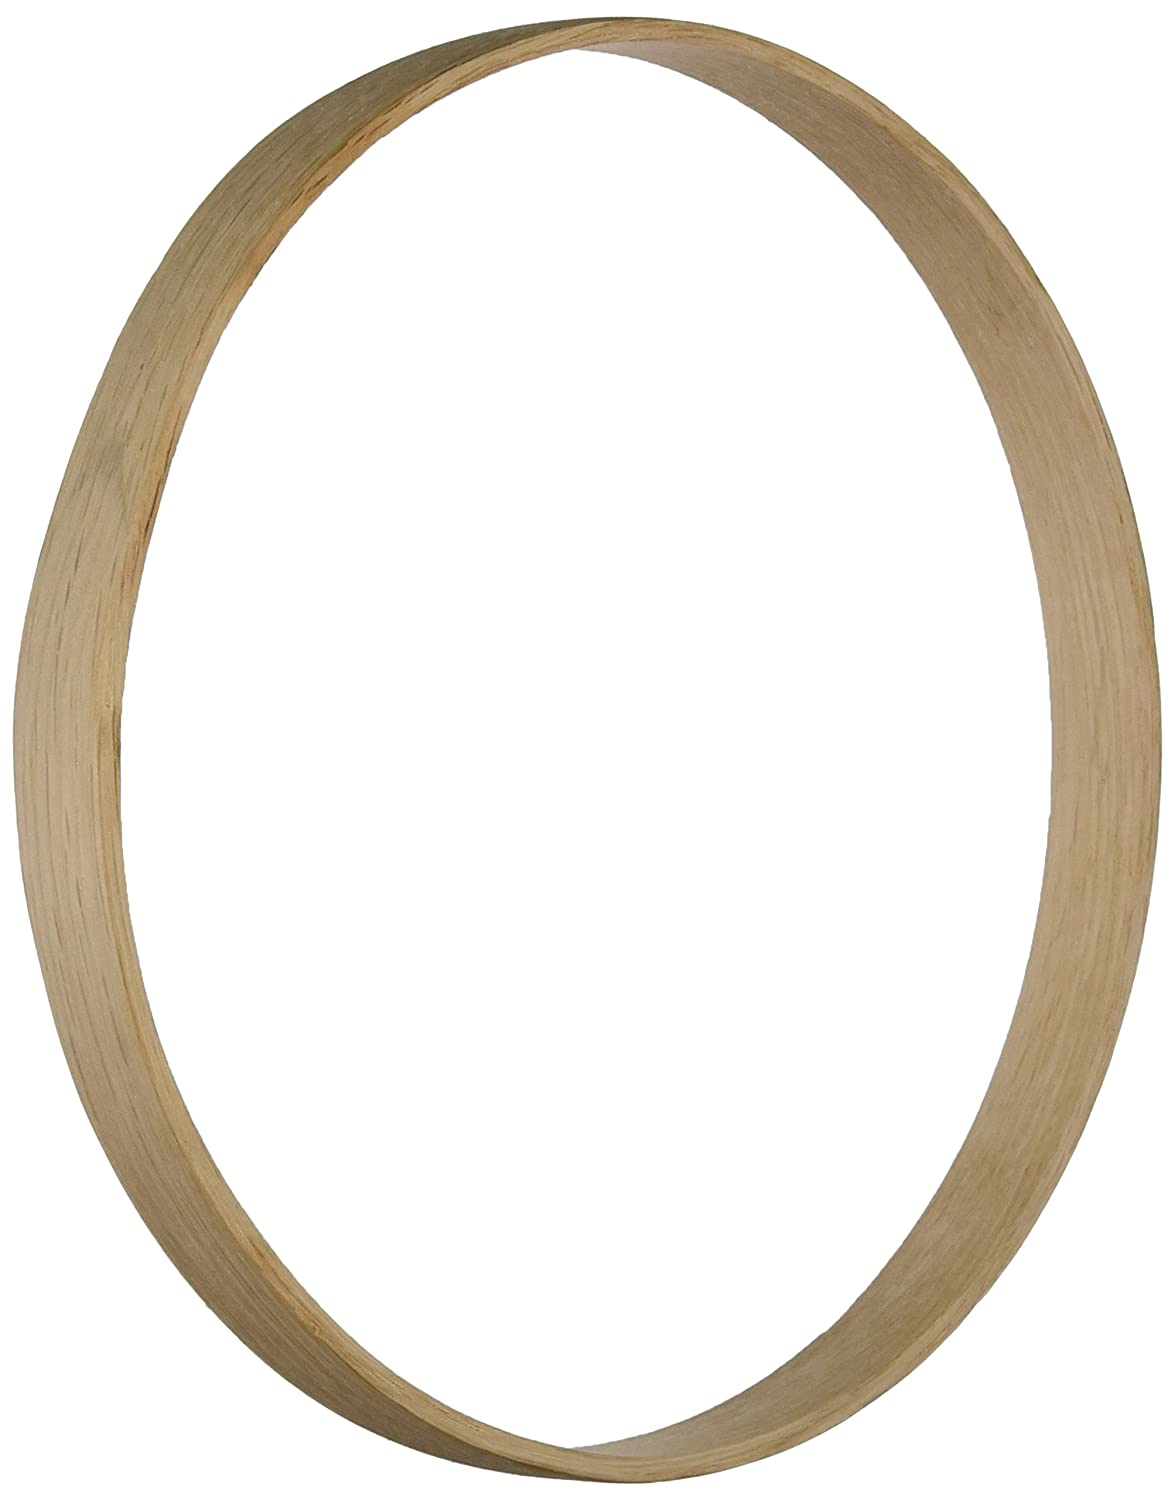 Commonwealth Basket Basketry Round Hoops, 8-Inch by 3/4-Inch Depth HOS83